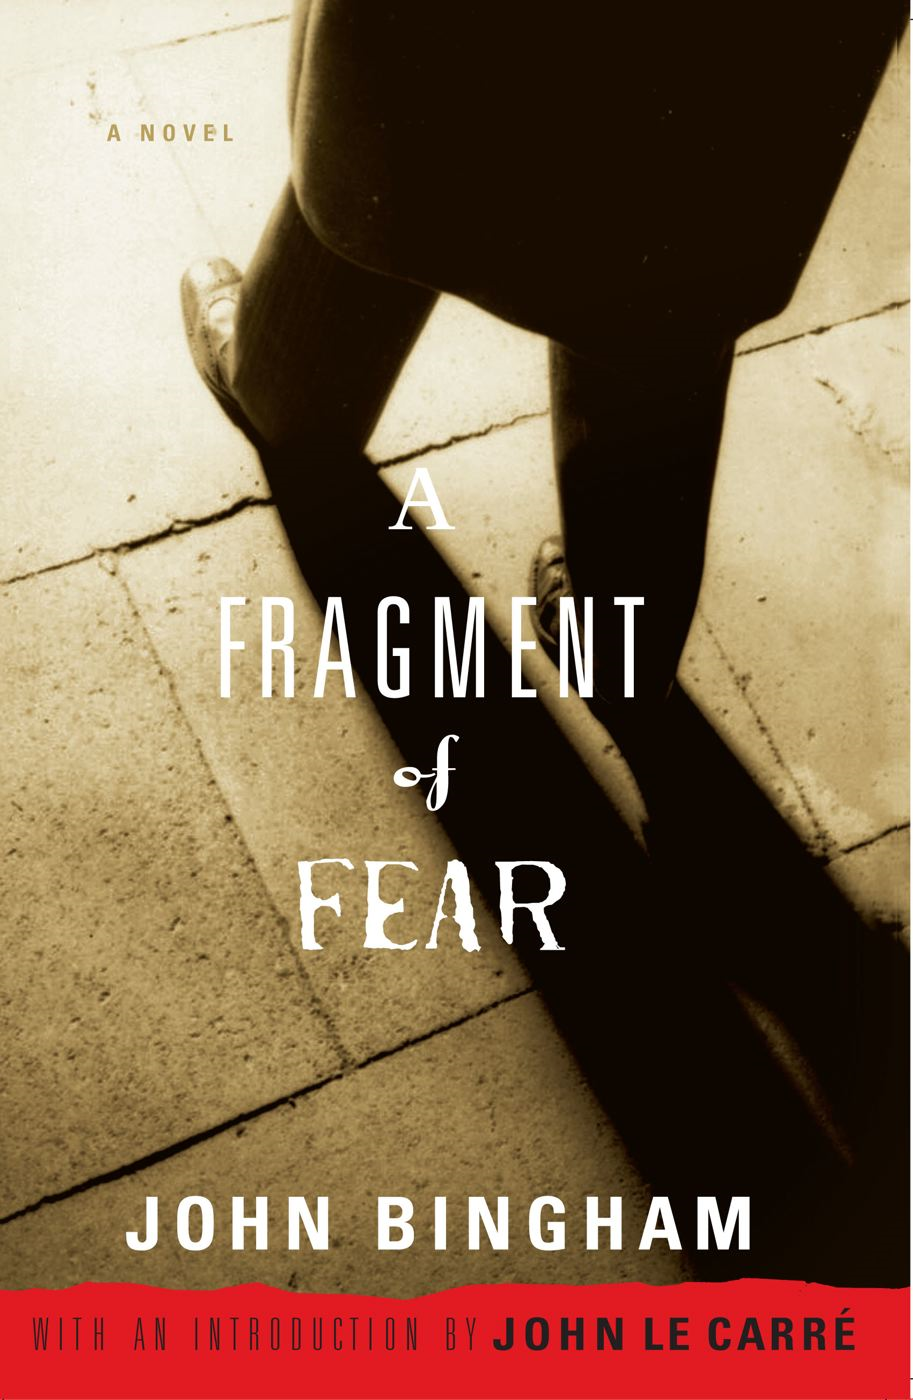 A Fragment of Fear By: John Bingham